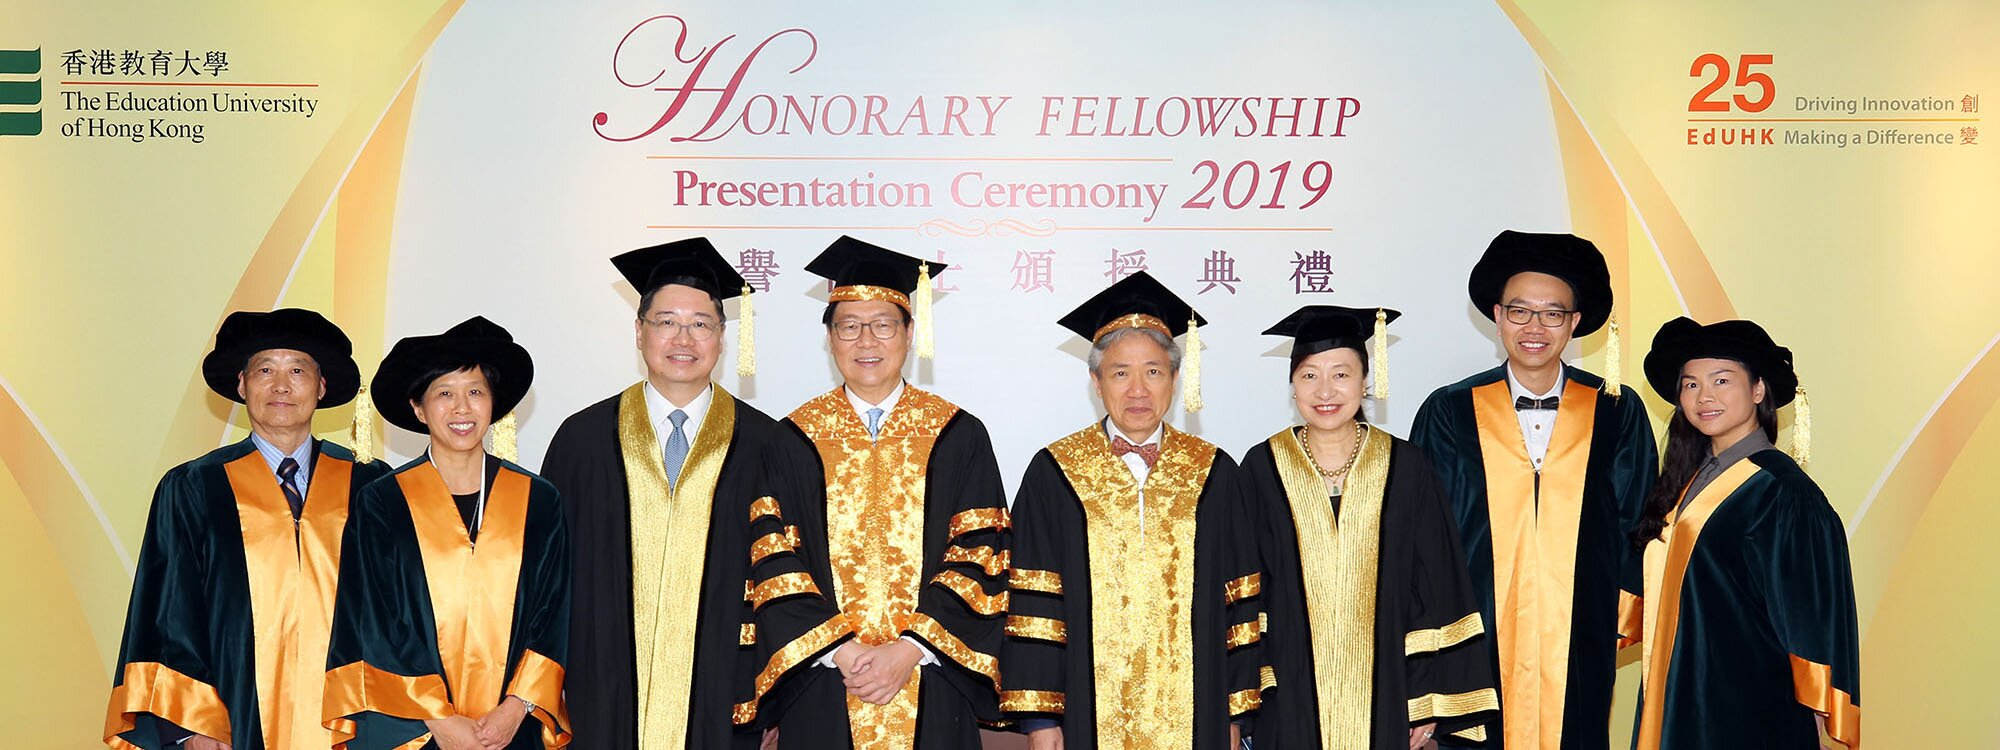 [:en EdUHK Confers Honorary Fellowships on Four Distinguished Individuals  教大頒發榮譽院士銜予四位傑出人士